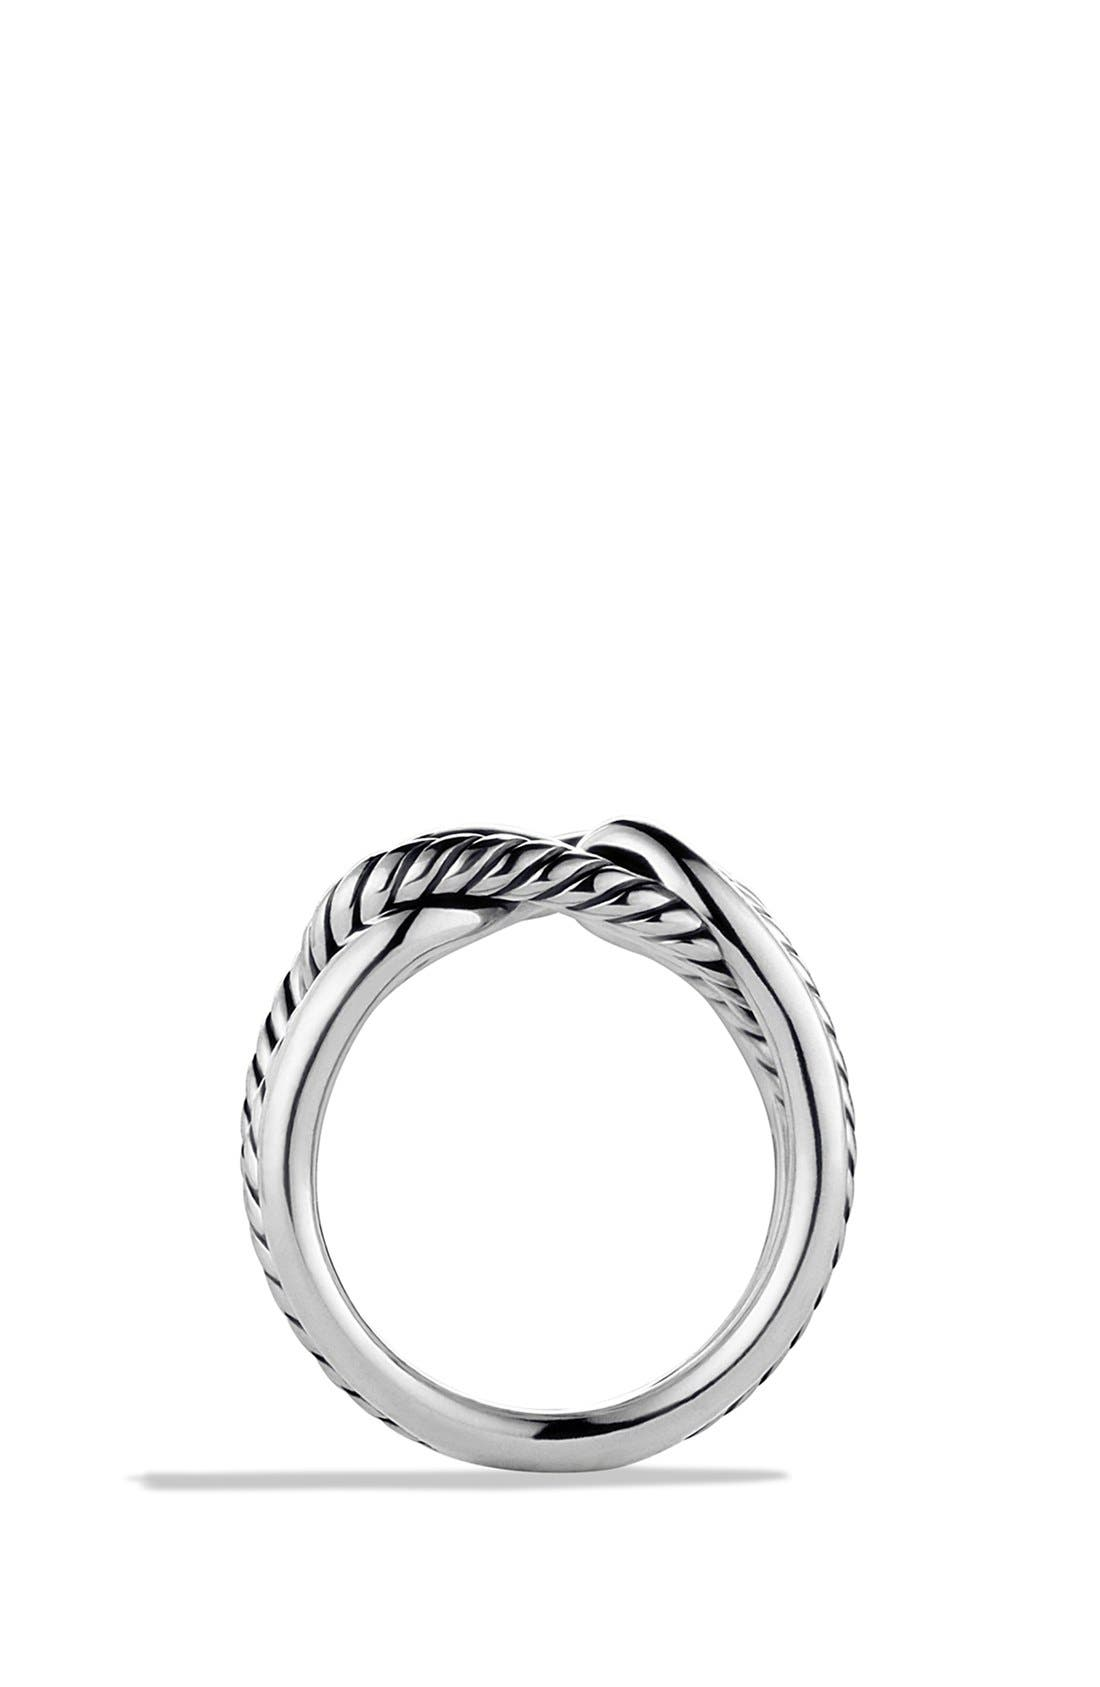 Alternate Image 3  - David Yurman 'Labyrinth' Ring